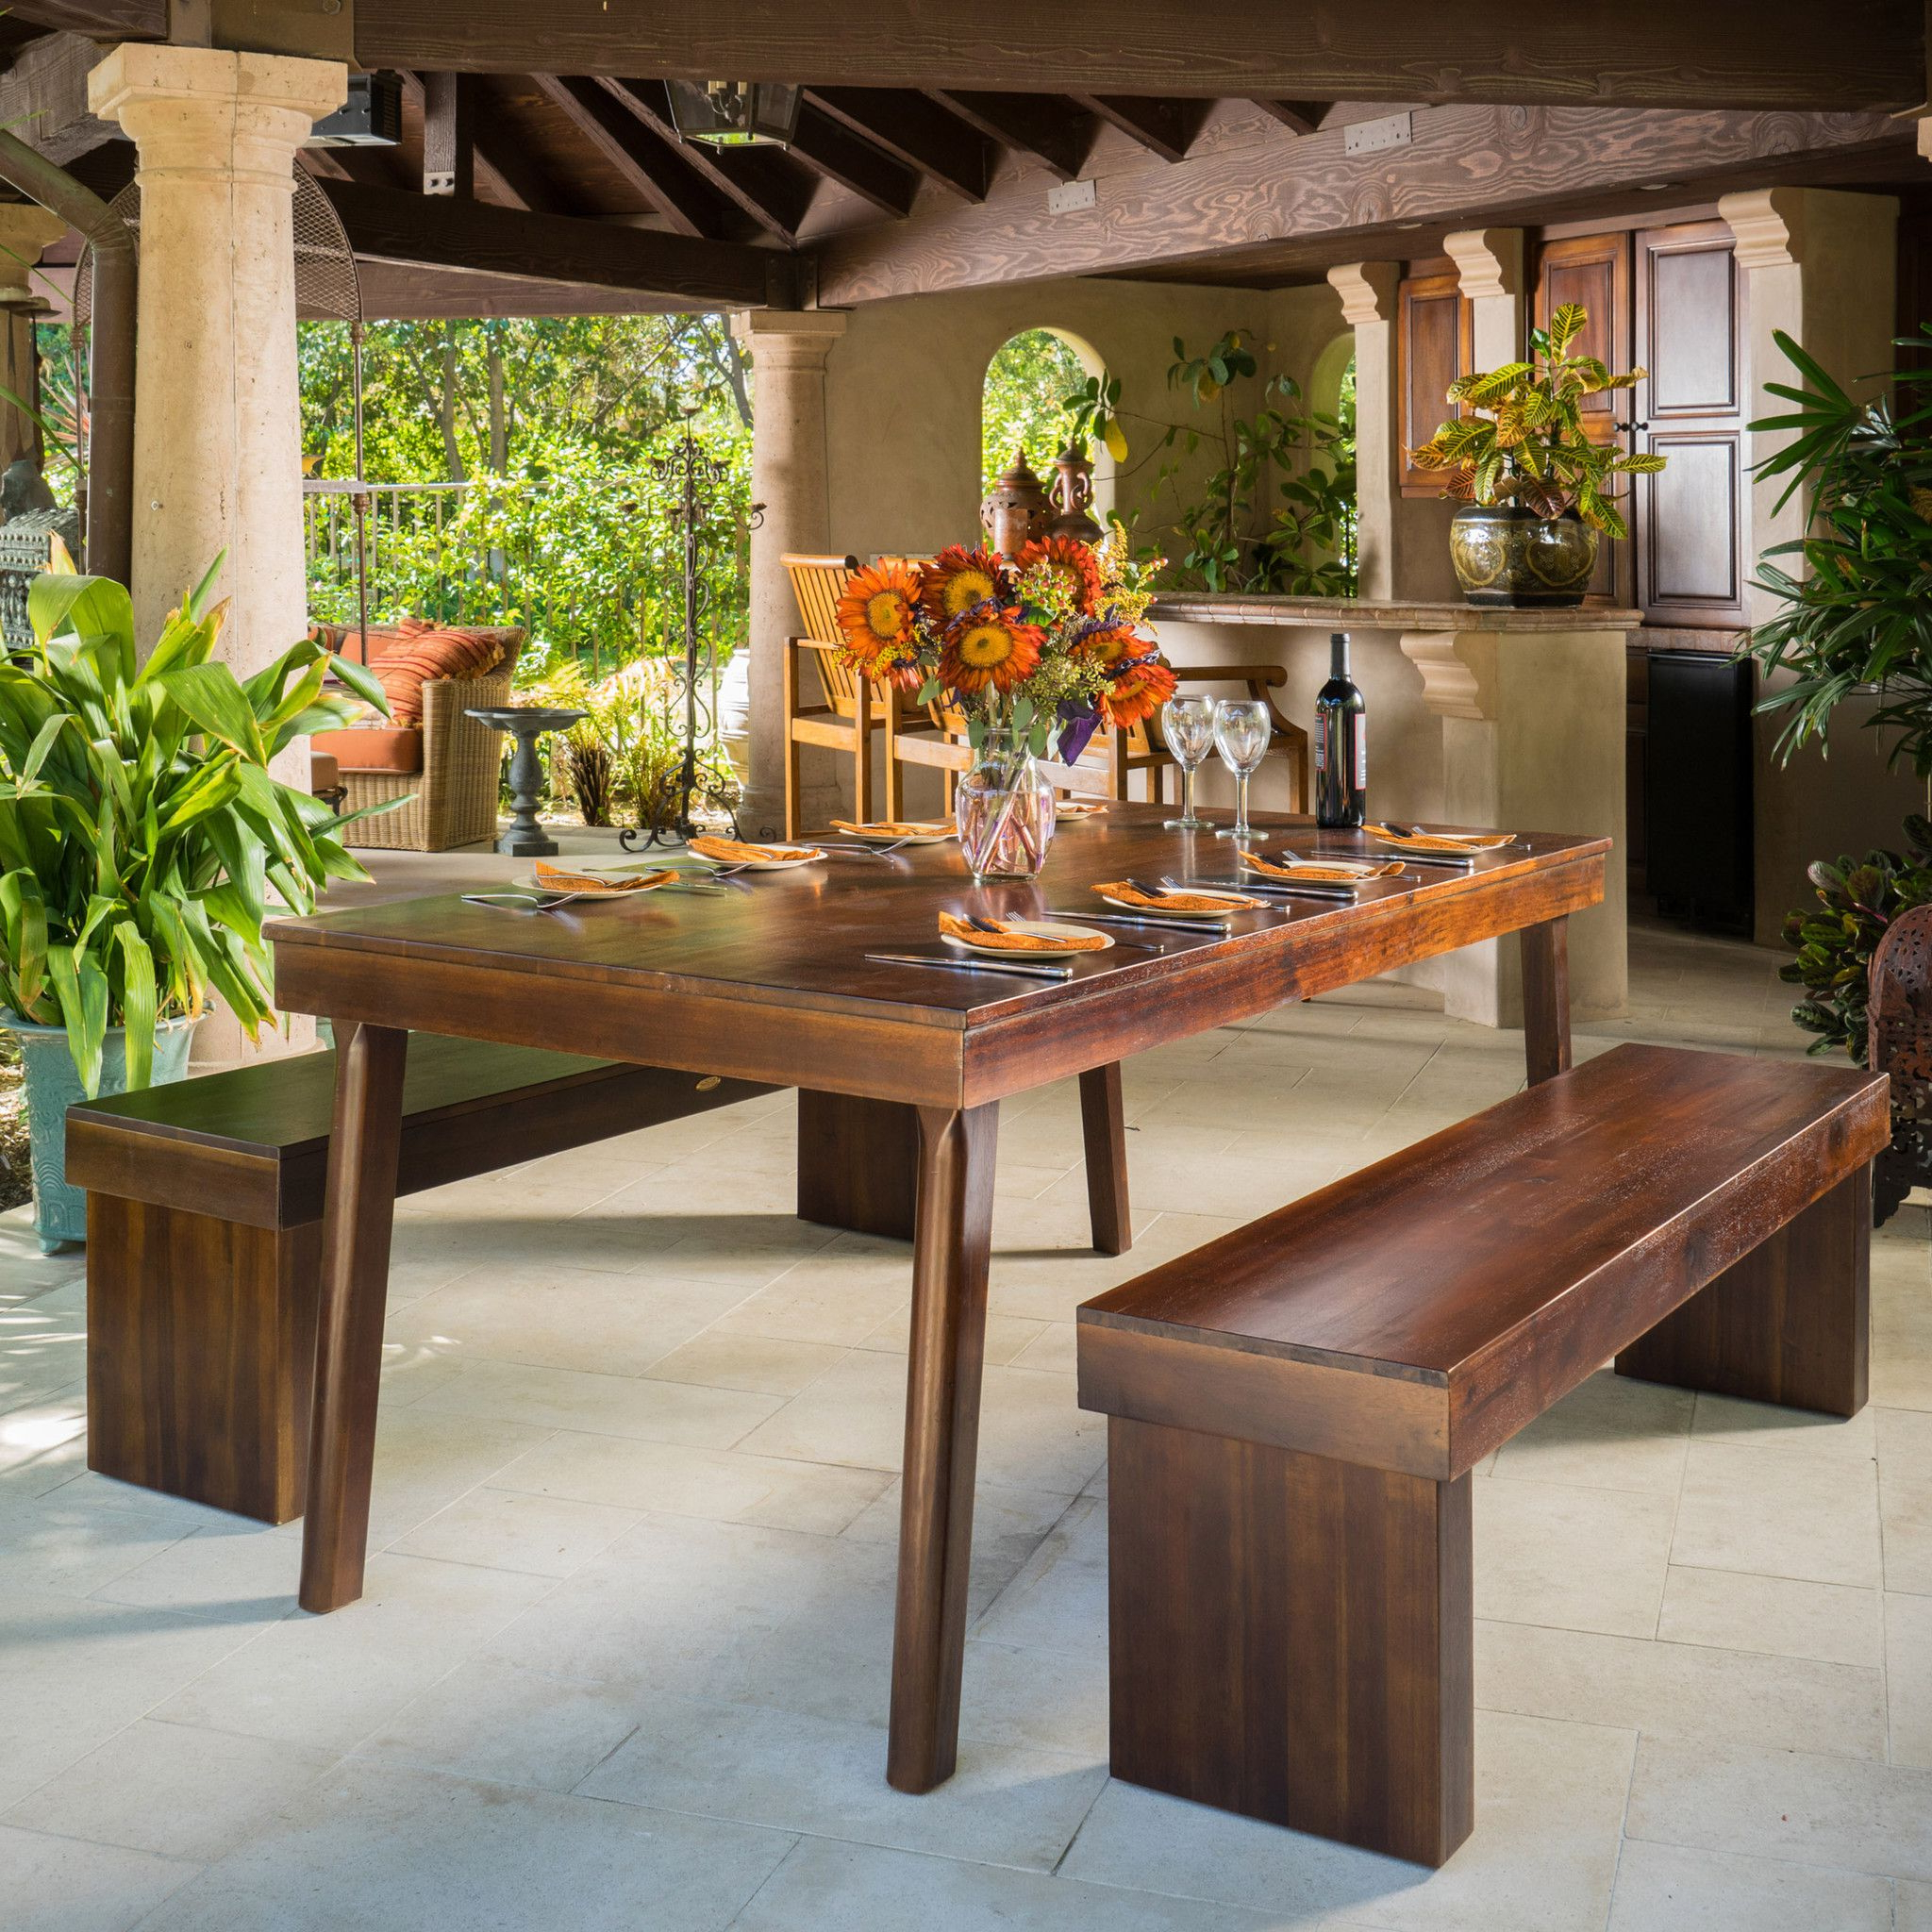 2020 Kaya 3 Piece Dining Sets Pertaining To Salvador 3Pc Mahogany Stained Wood Table And Bench Dining Set (View 8 of 25)